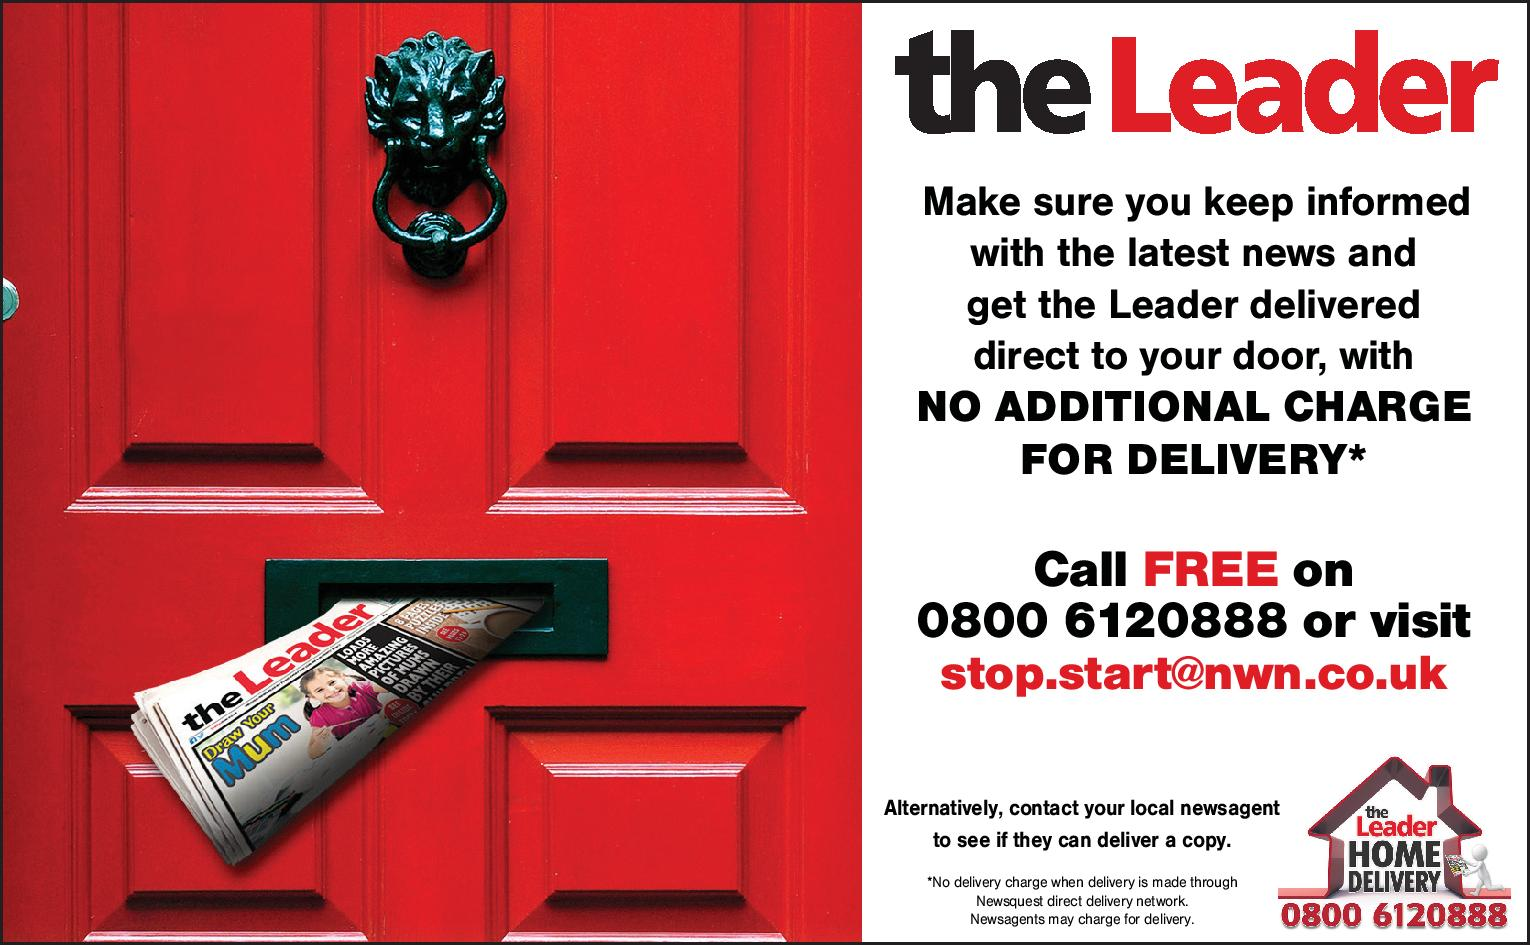 leaderlive.co.uk  the Leader Home Delivered